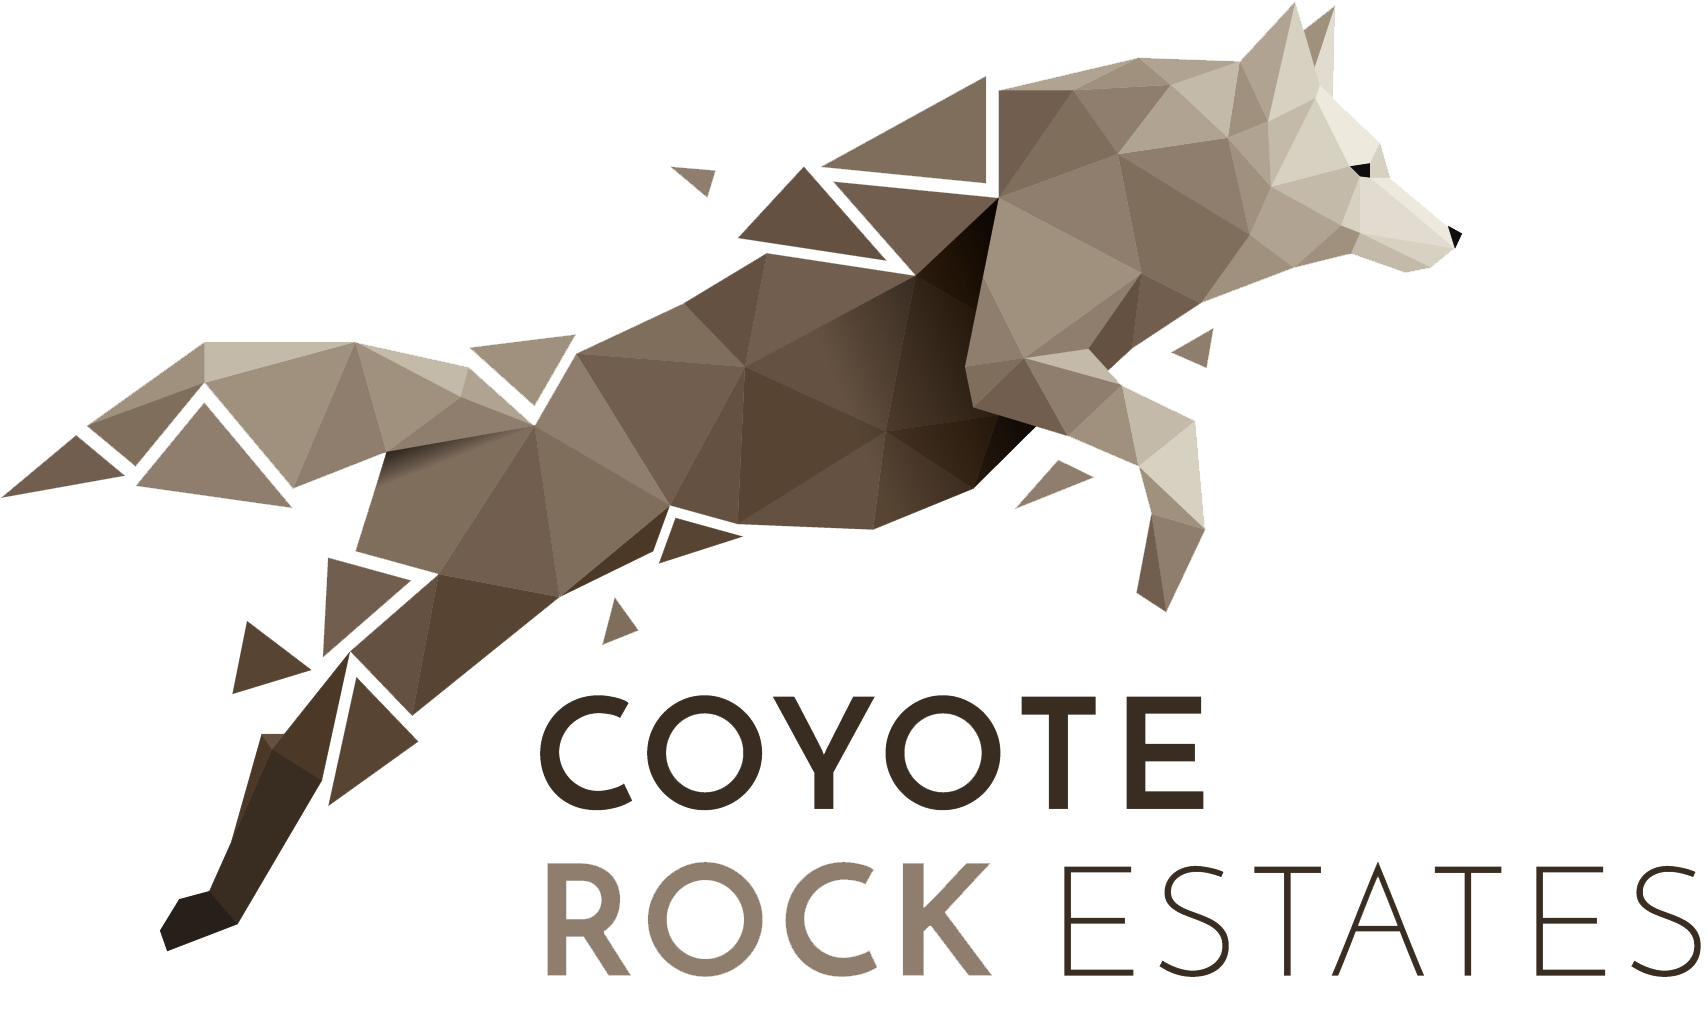 Coyote Rock Estates